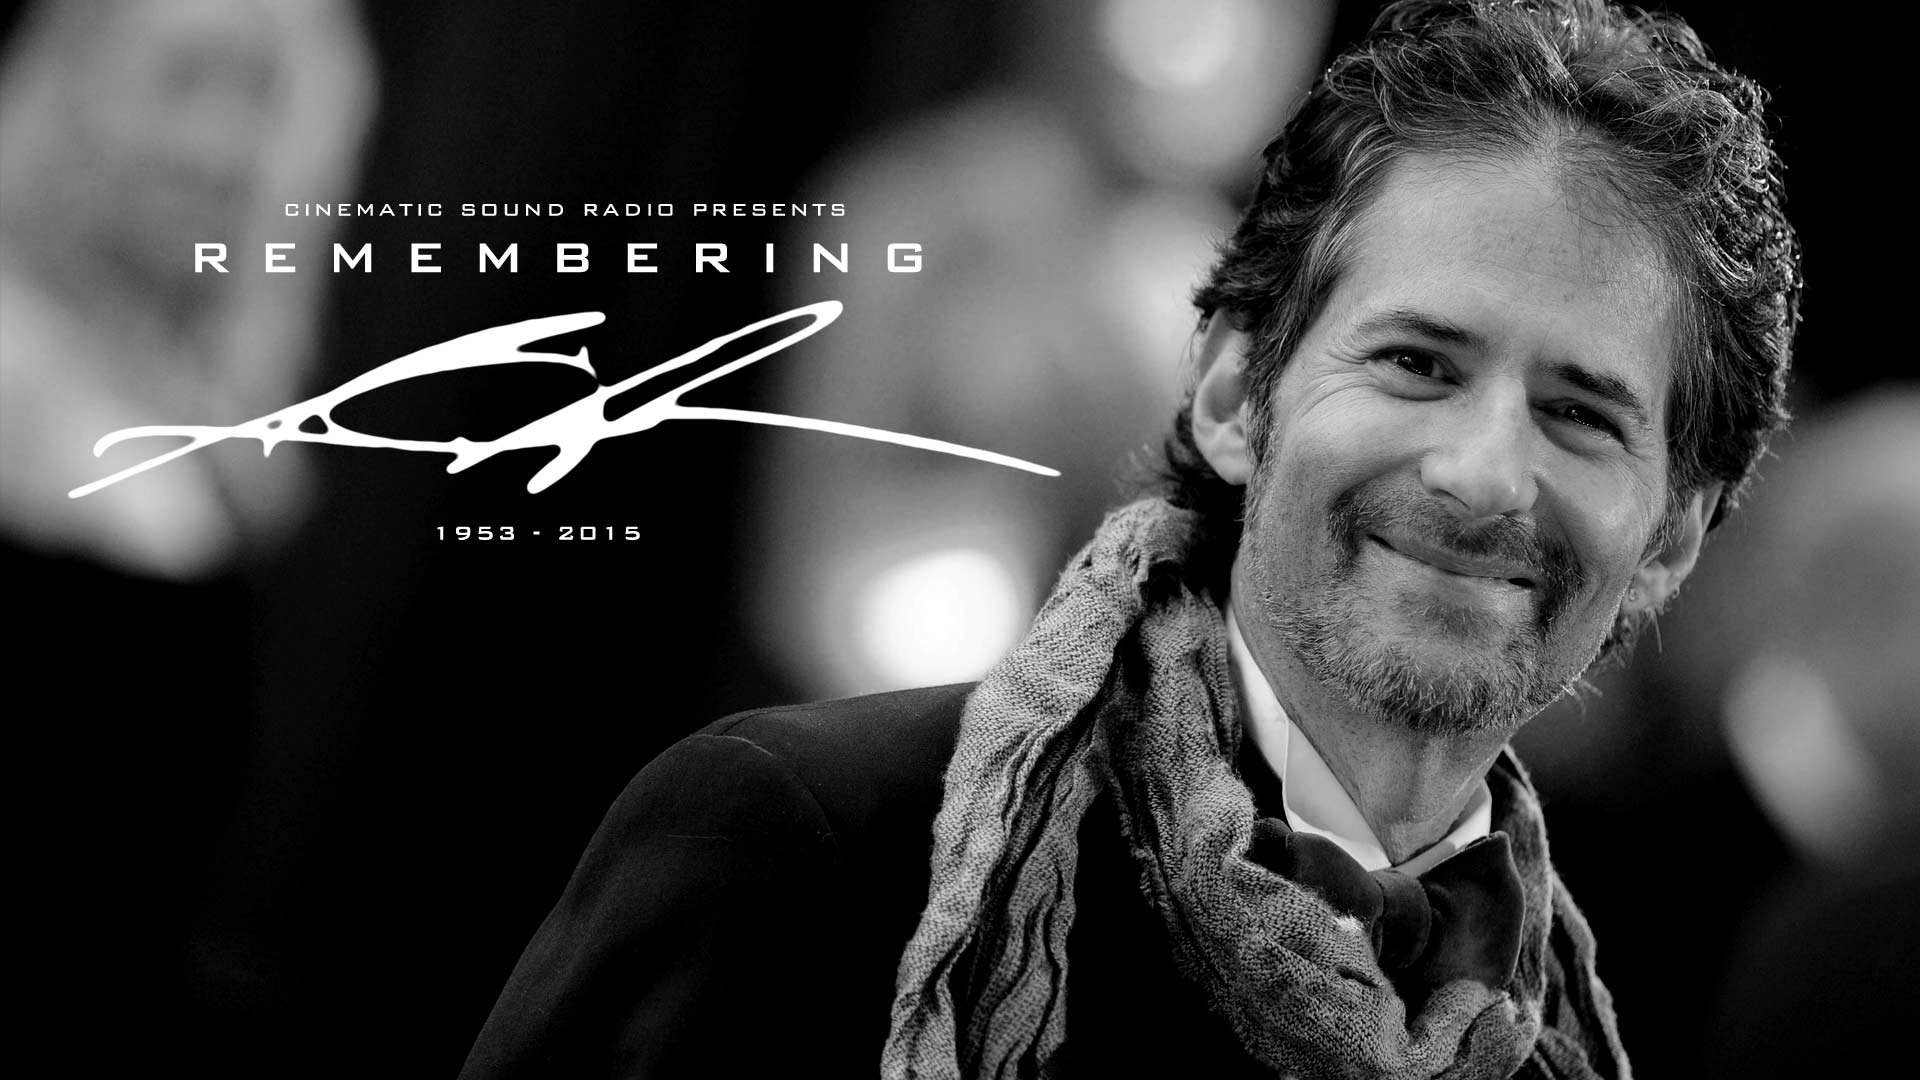 james horner pas de deuxjames horner rose, james horner titanic, james horner hymn to the sea, james horner a gift of a thistle скачать, james horner rose скачать, james horner mp3, james horner - a gift of a thistle, james horner титаник, james horner avatar, james horner the portrait скачать, james horner braveheart скачать, james horner rose piano, james horner ноты для фортепиано, james horner i want to spend my lifetime loving you lyrics, james horner the portrait, james horner yours forever, james horner hymn to the sea mp3, james horner wiki, james horner family, james horner pas de deux